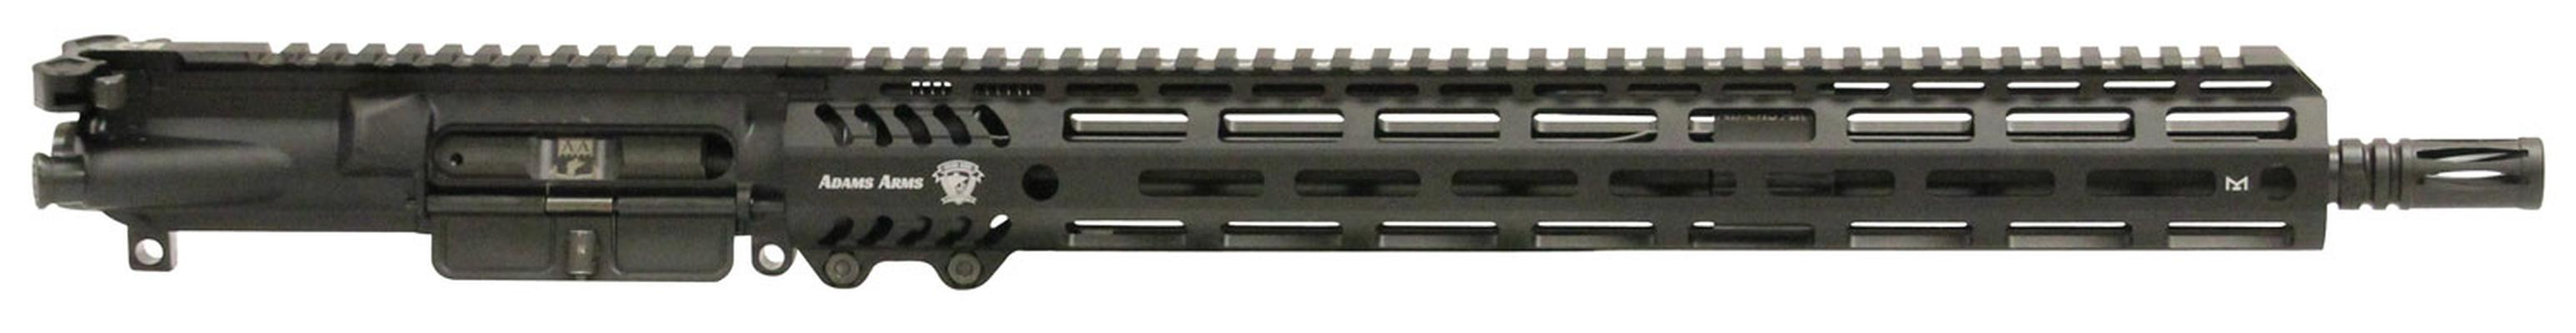 5.56MM P2 UPPER 16IN A